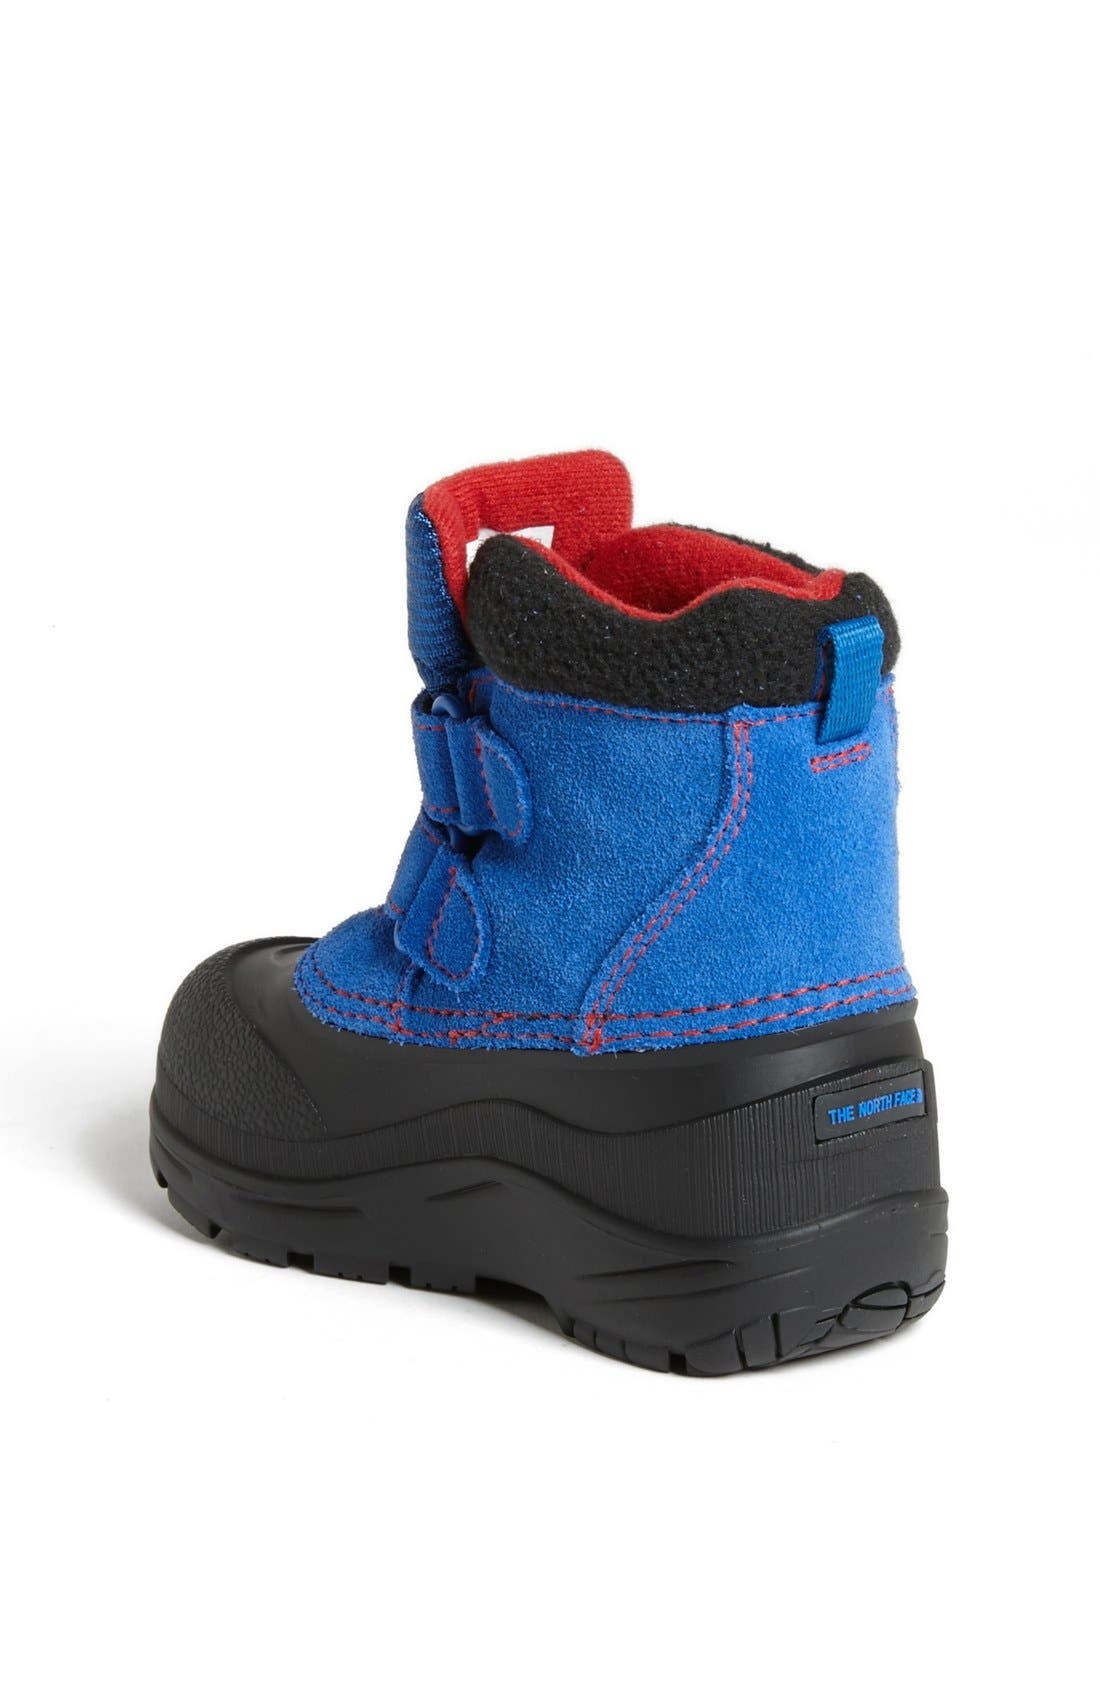 Alternate Image 2  - The North Face 'Chilkat' Waterproof Snow Boot (Walker & Toddler)